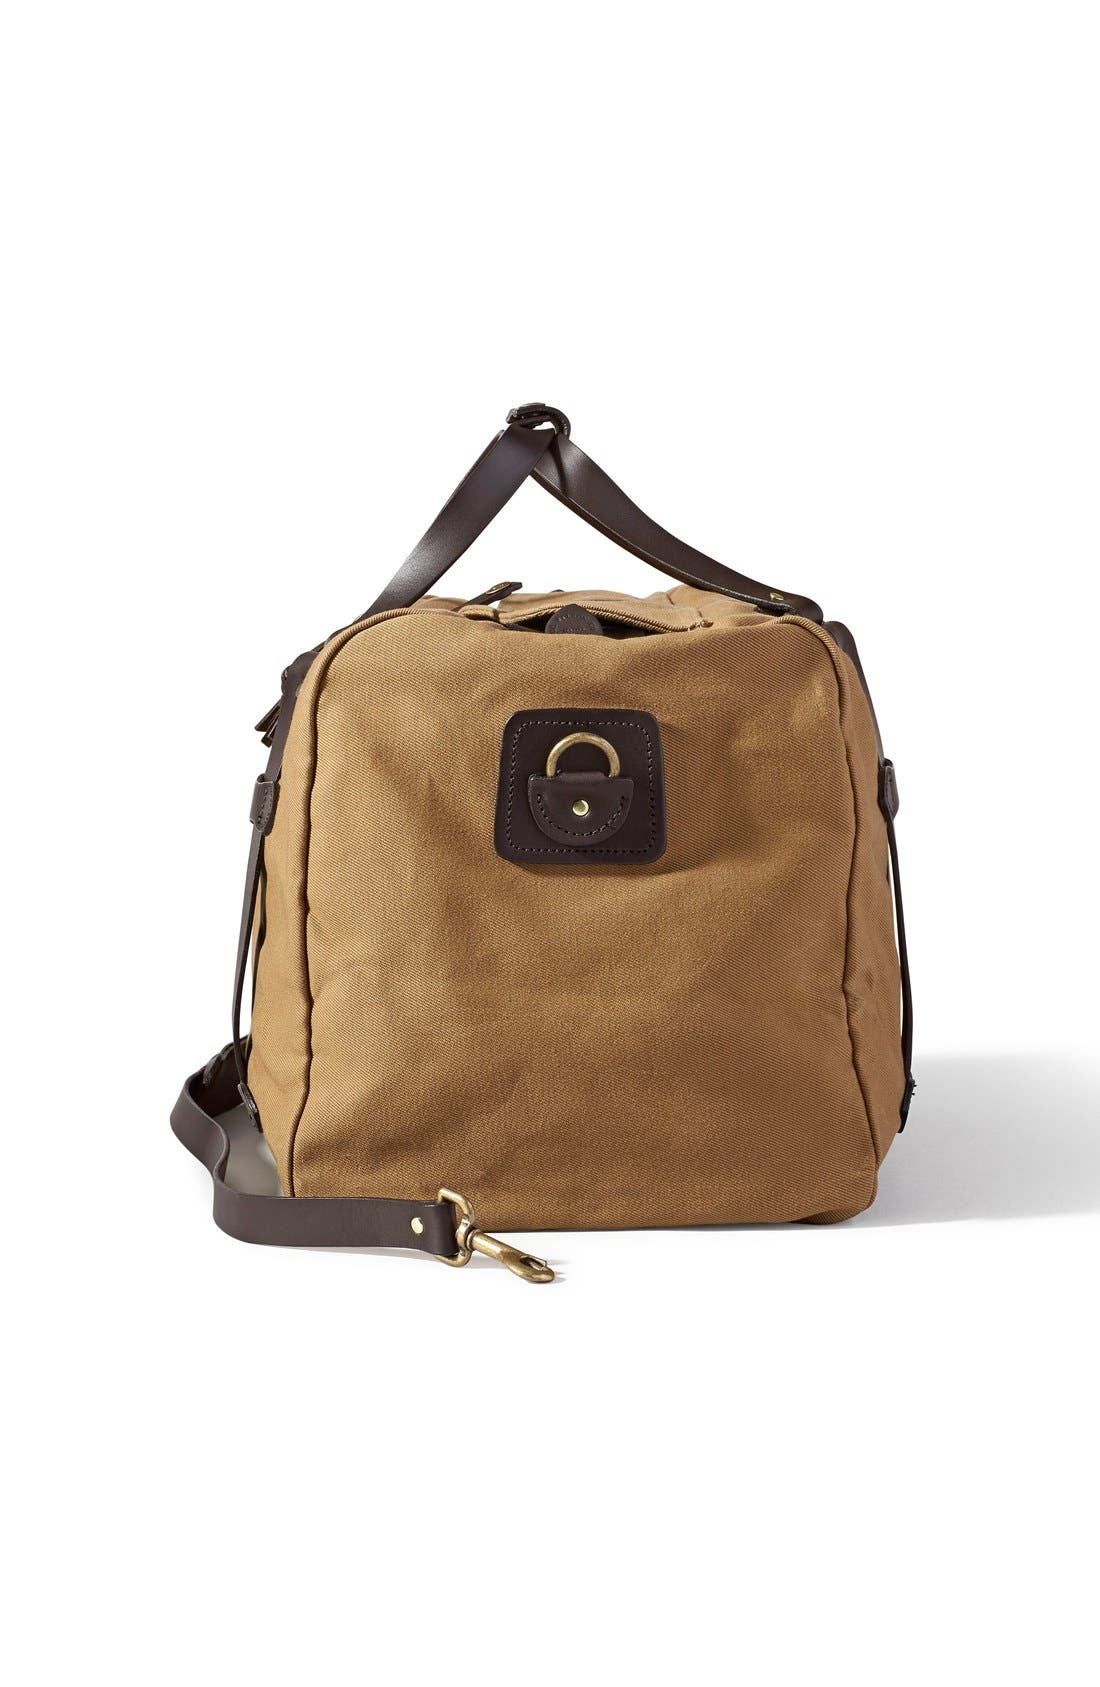 Medium Duffel Bag,                             Alternate thumbnail 2, color,                             Tan